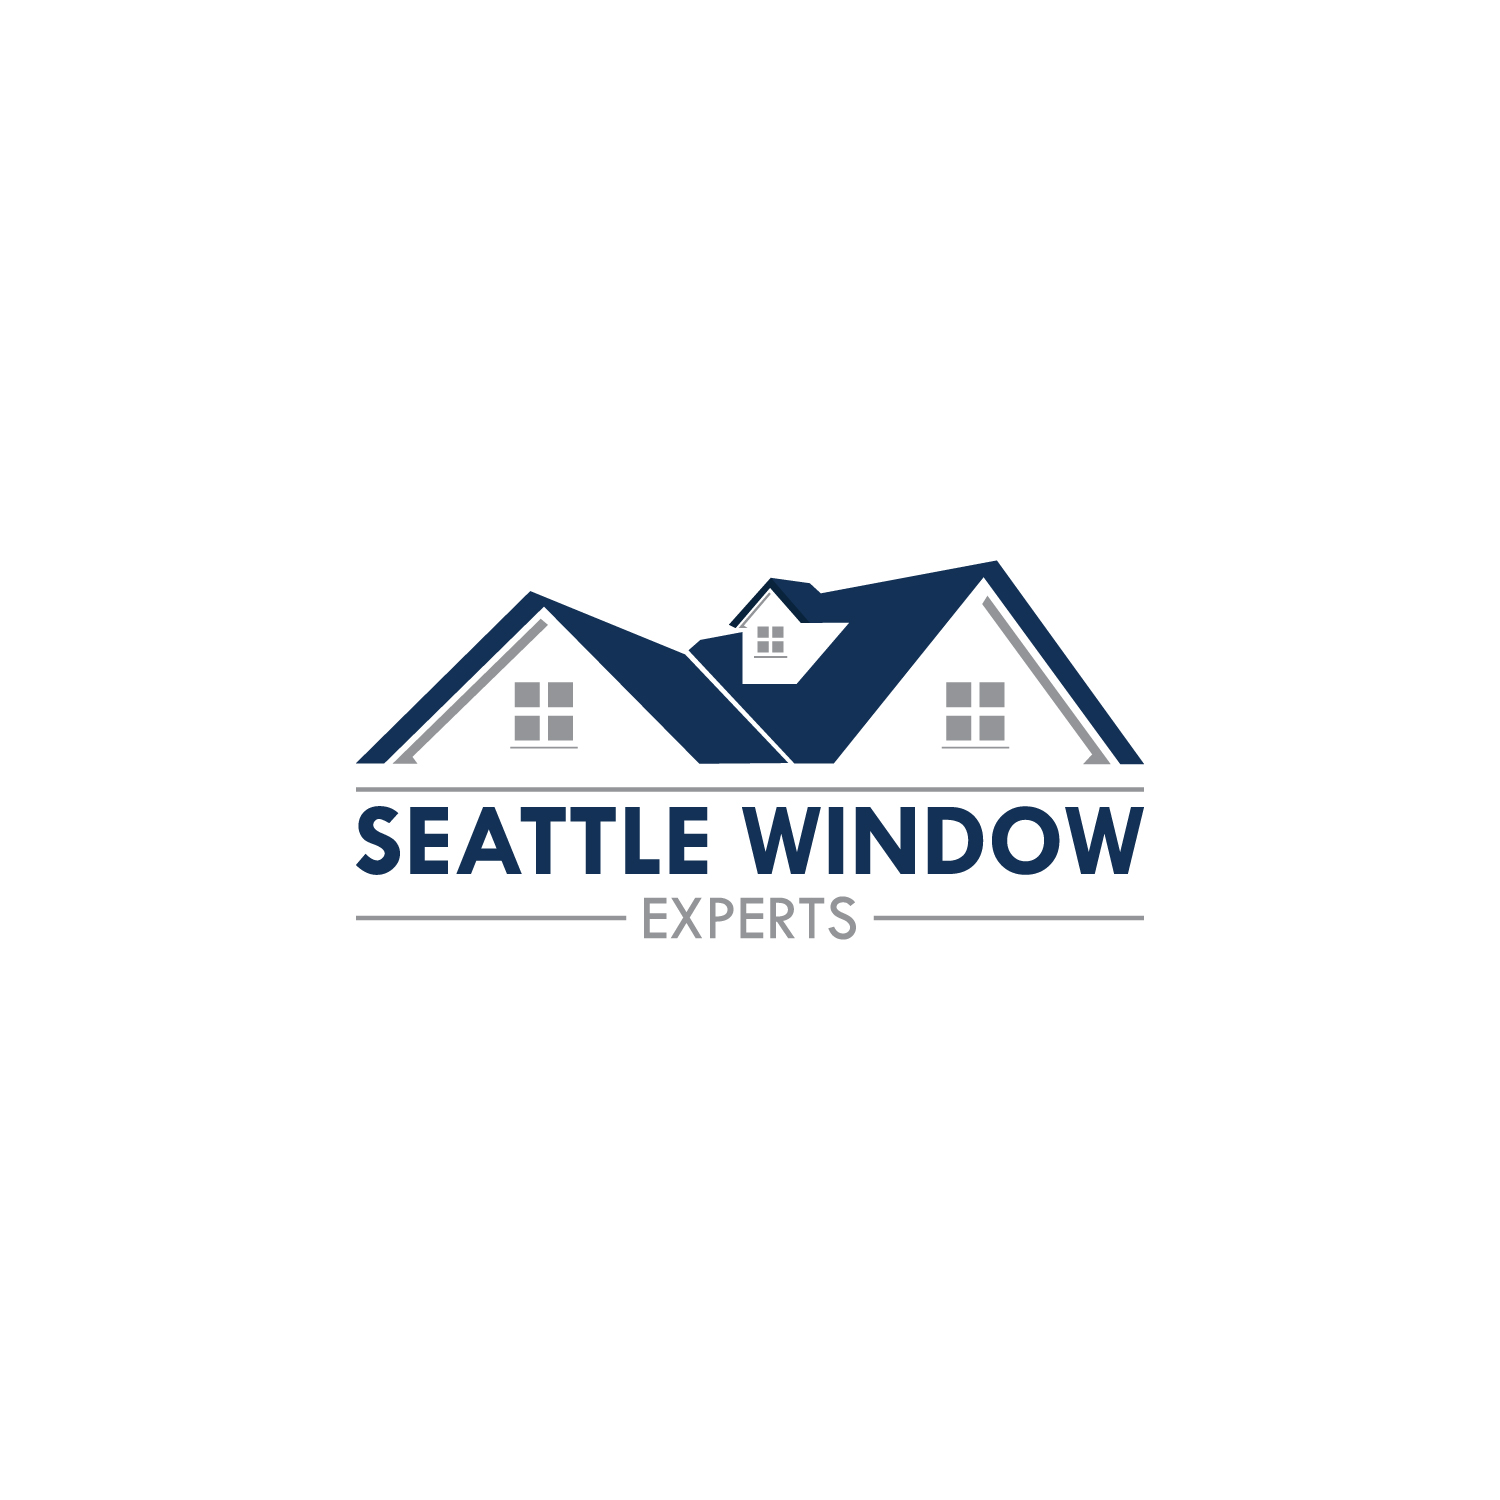 Seattle Window Experts